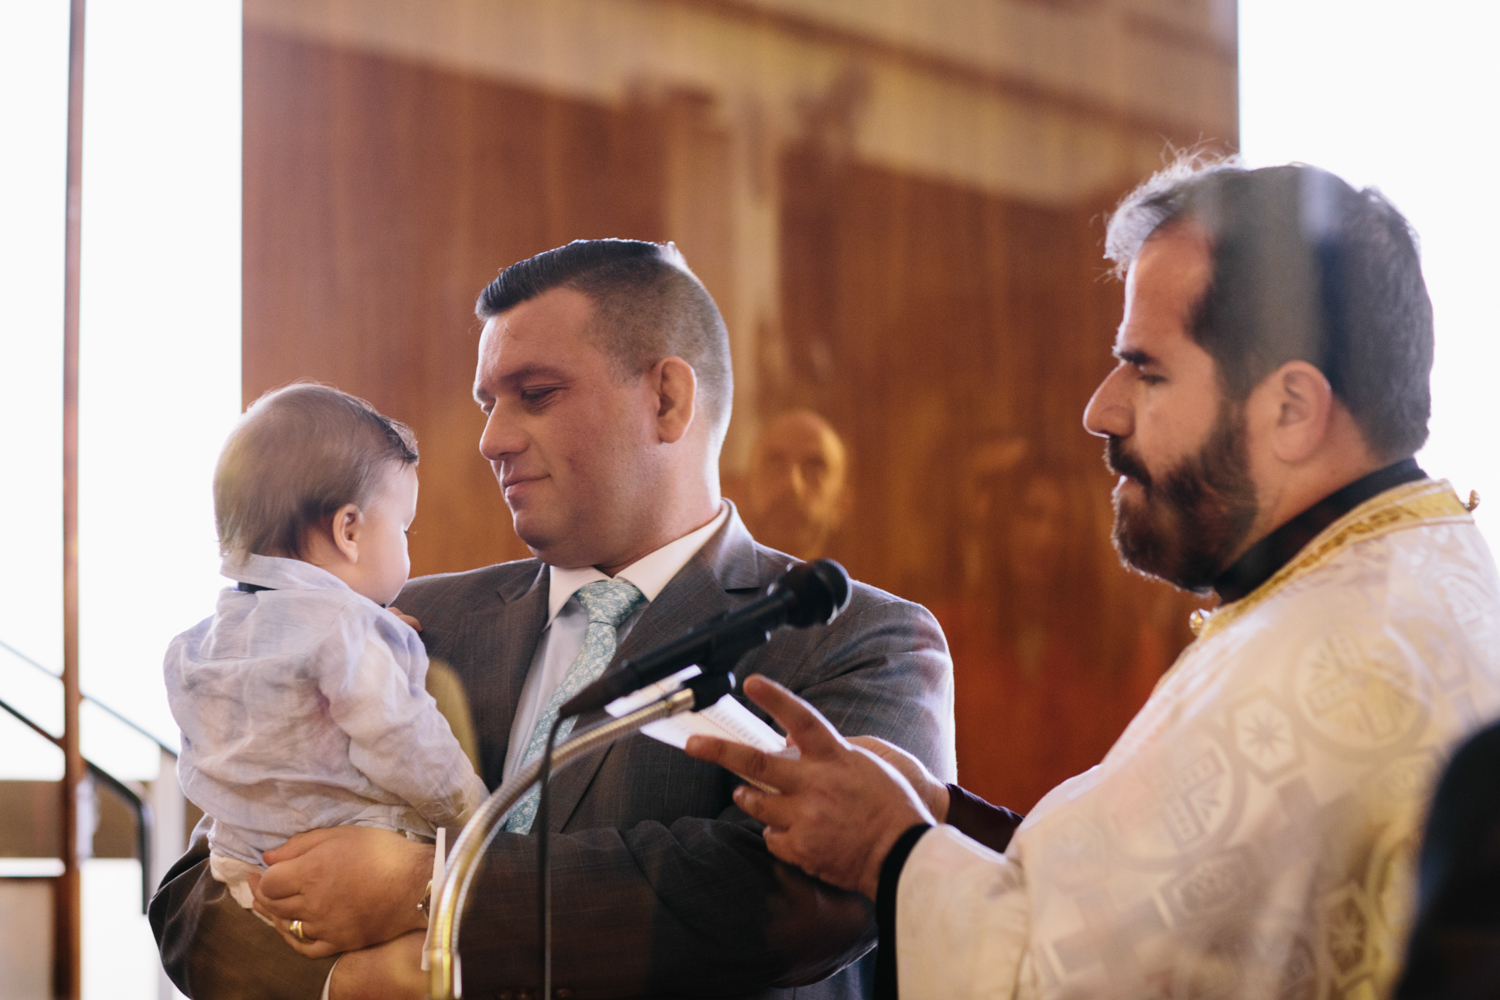 sheridan_nilsson_christening_greek_orthodox_belmore.057.jpeg